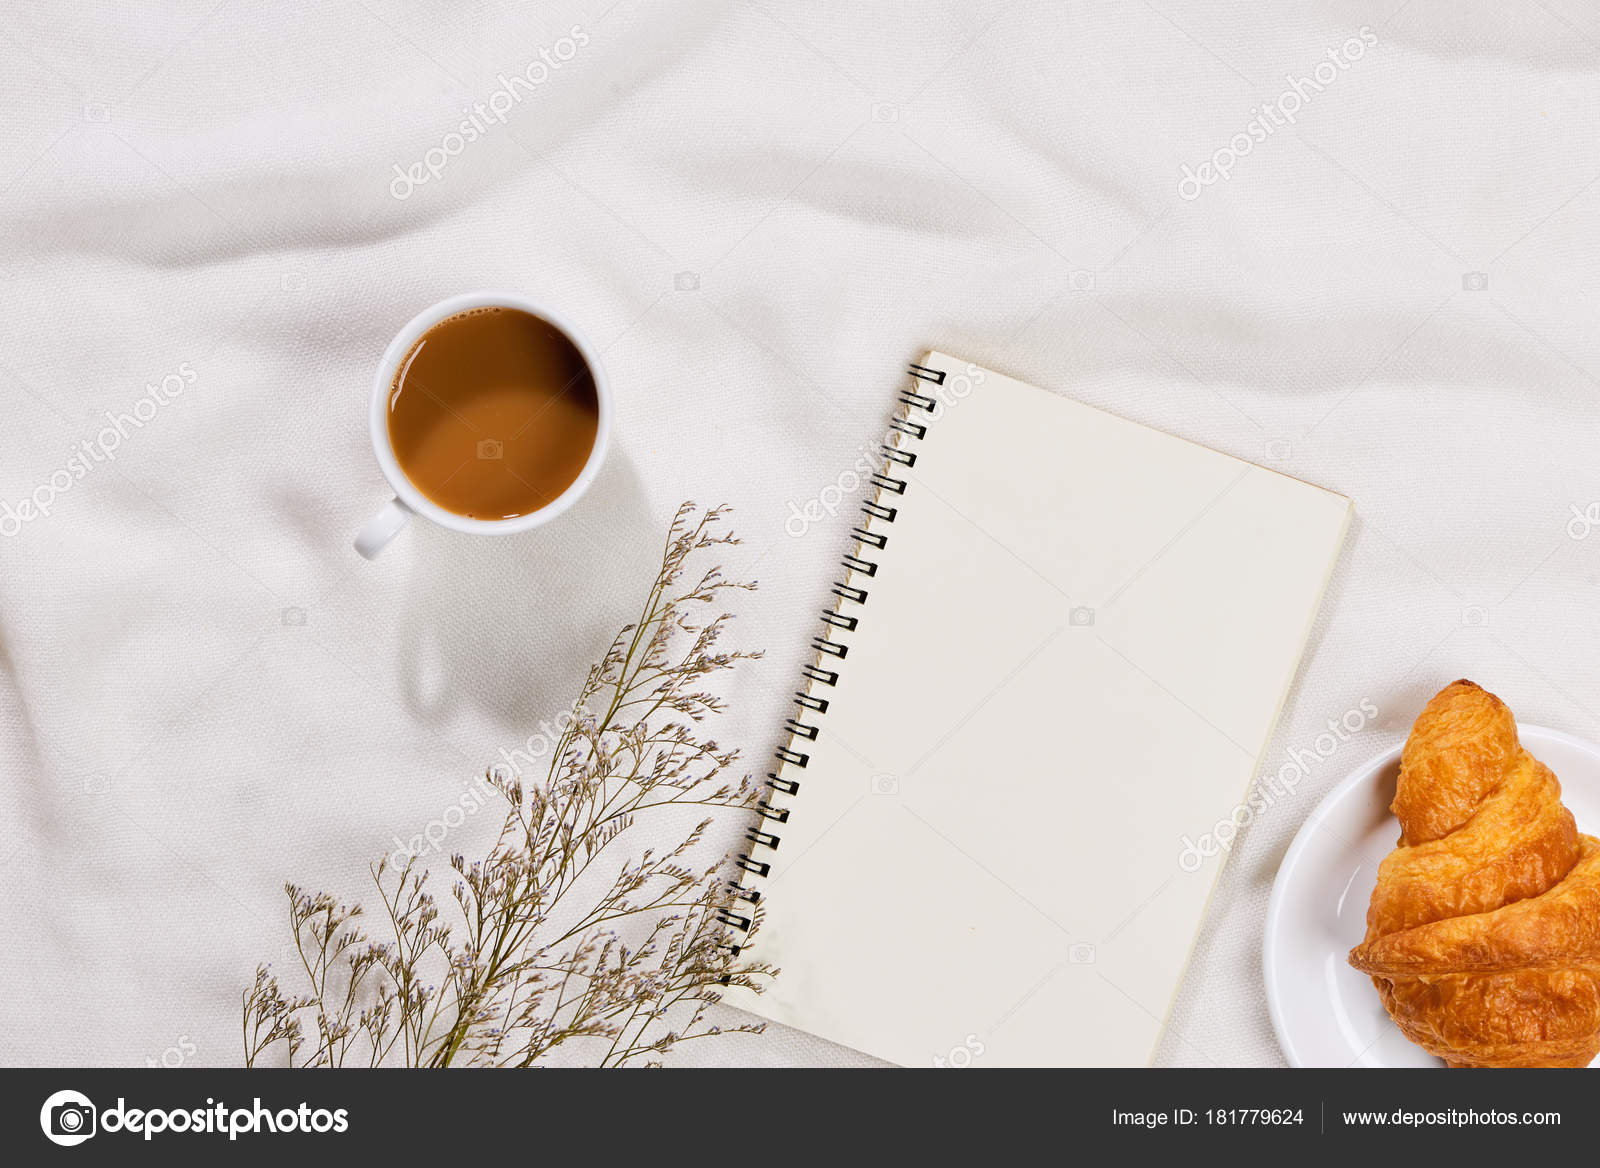 Cozy Tasty Breakfast Coffee Mug Croissant Blank Paper Note Stock Photo C Makidotvn 181779624